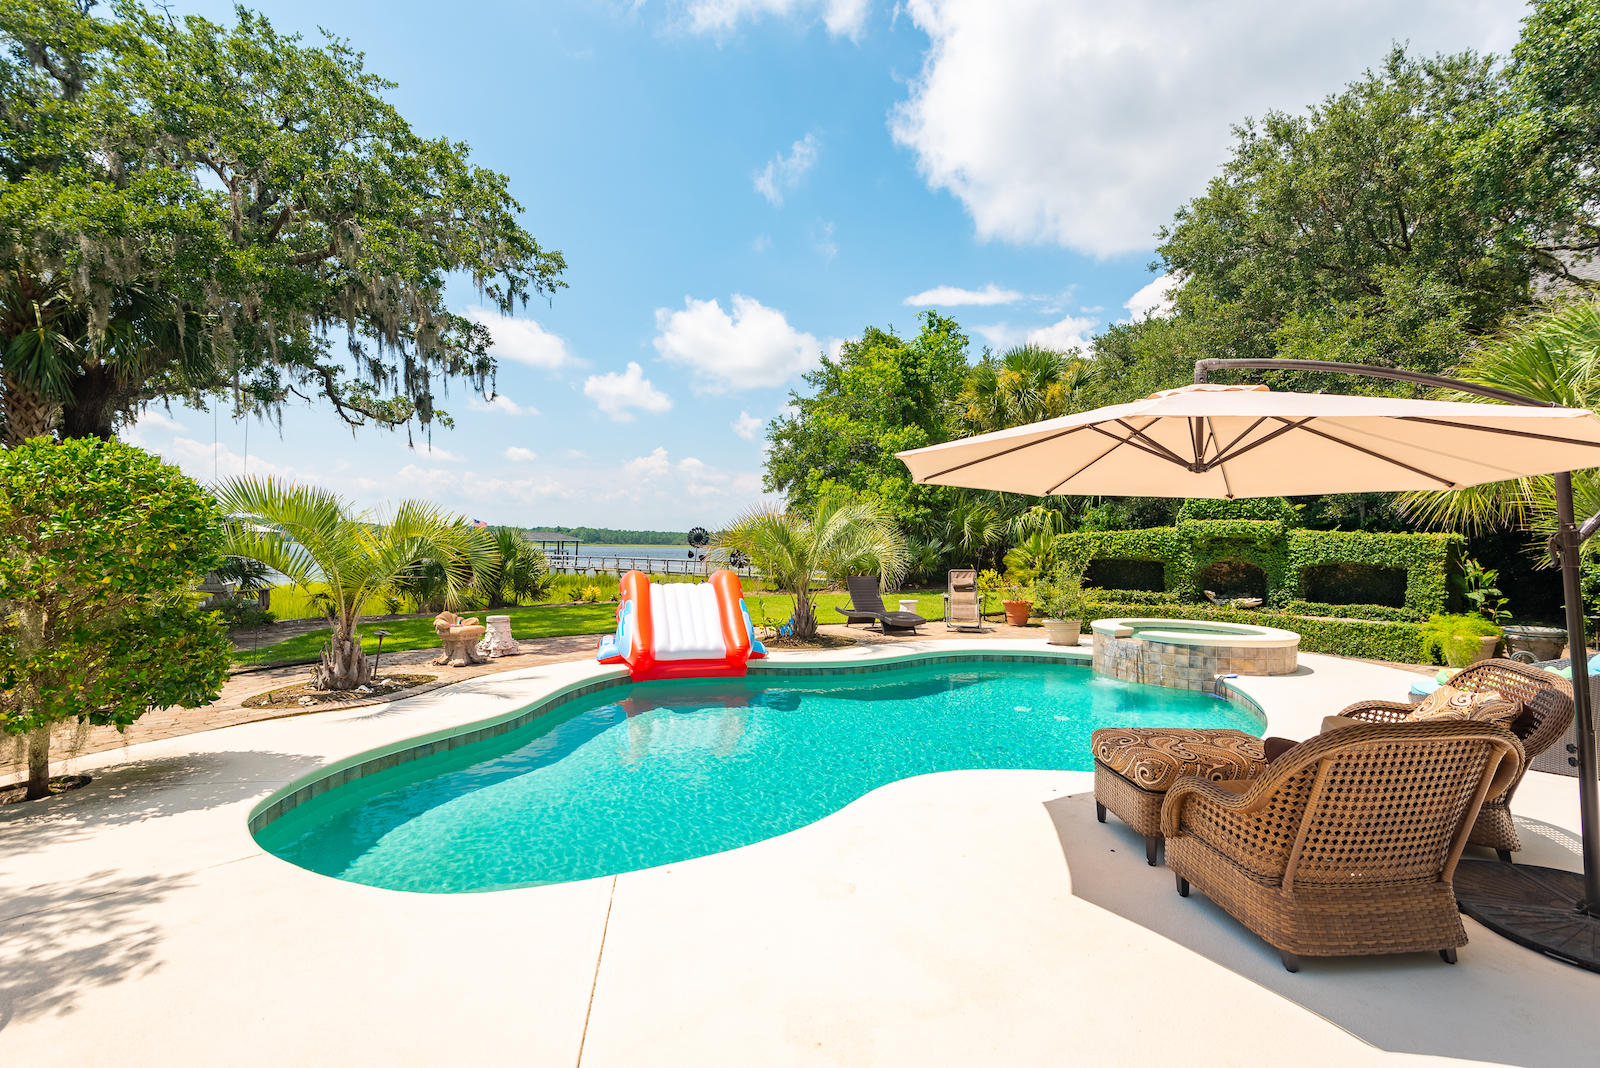 Rivertowne On The Wando Homes For Sale - 2483 River Bluff, Mount Pleasant, SC - 31